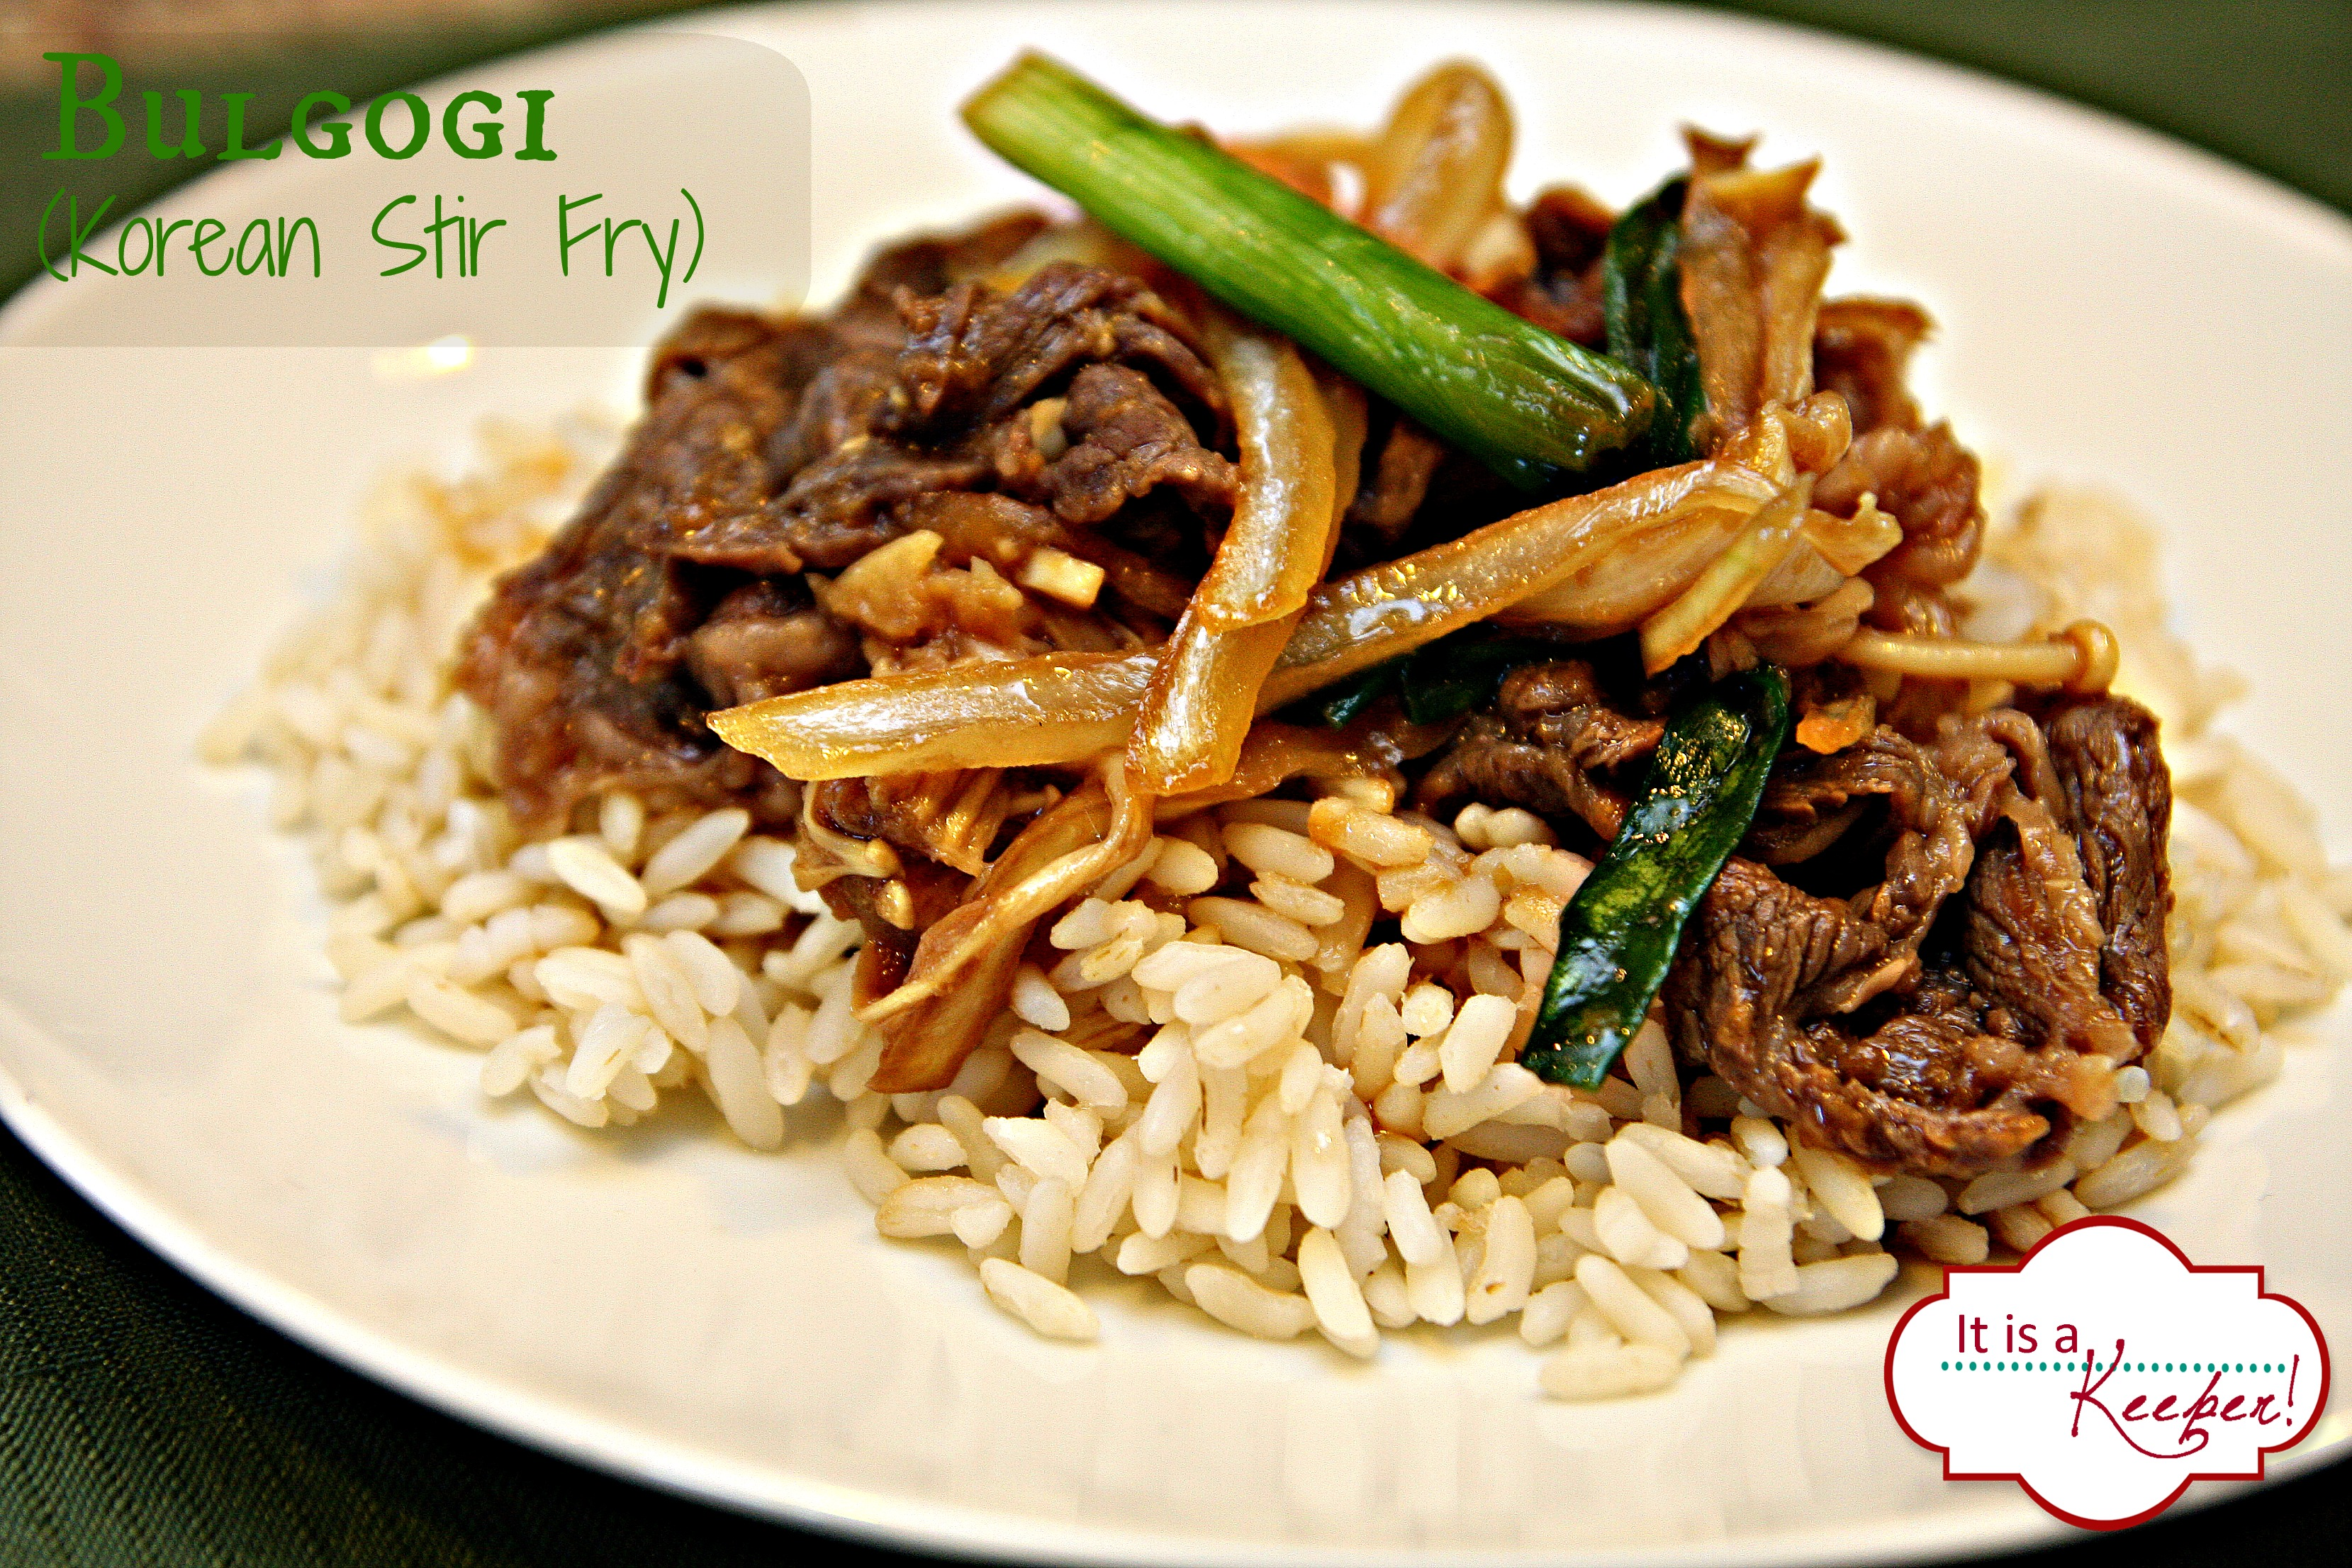 Bulgogi: Korean Stir Fry - It Is a Keeper